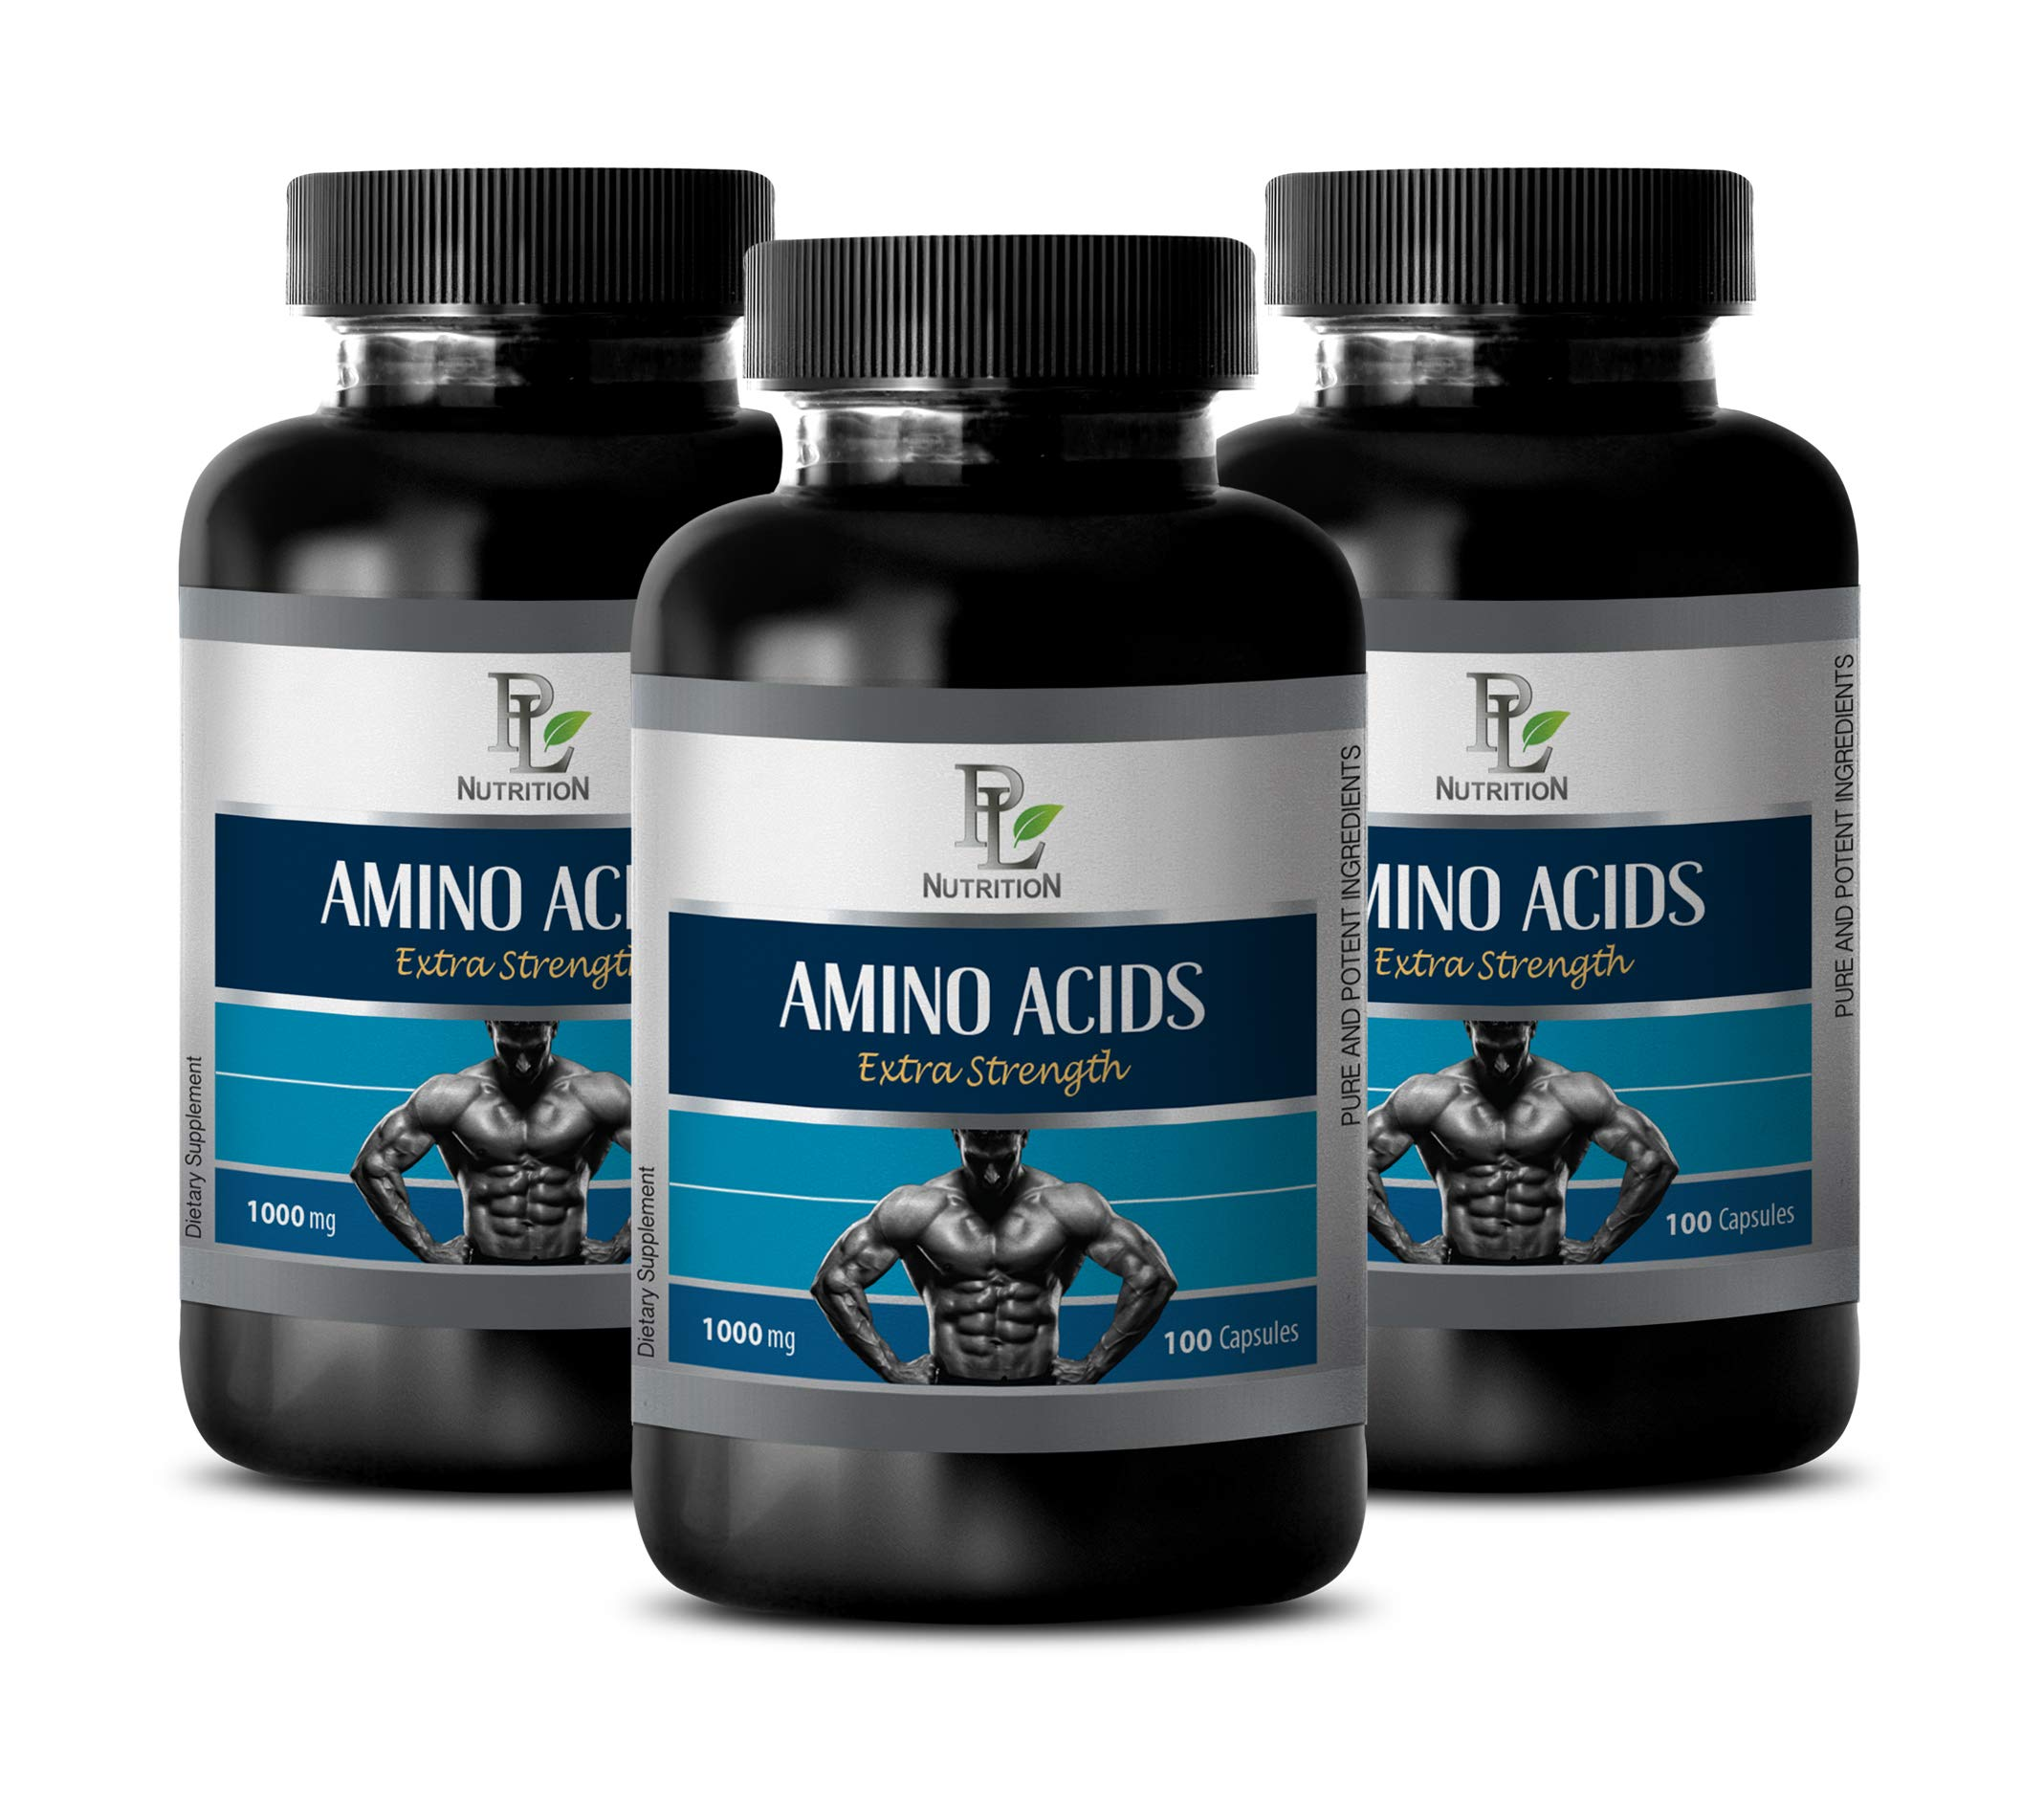 Muscle Mass Gainer - Amino ACIDS Extra Strength 1000MG - l-theanine and l-tyrosine - 3 Bottles 300 Capsules